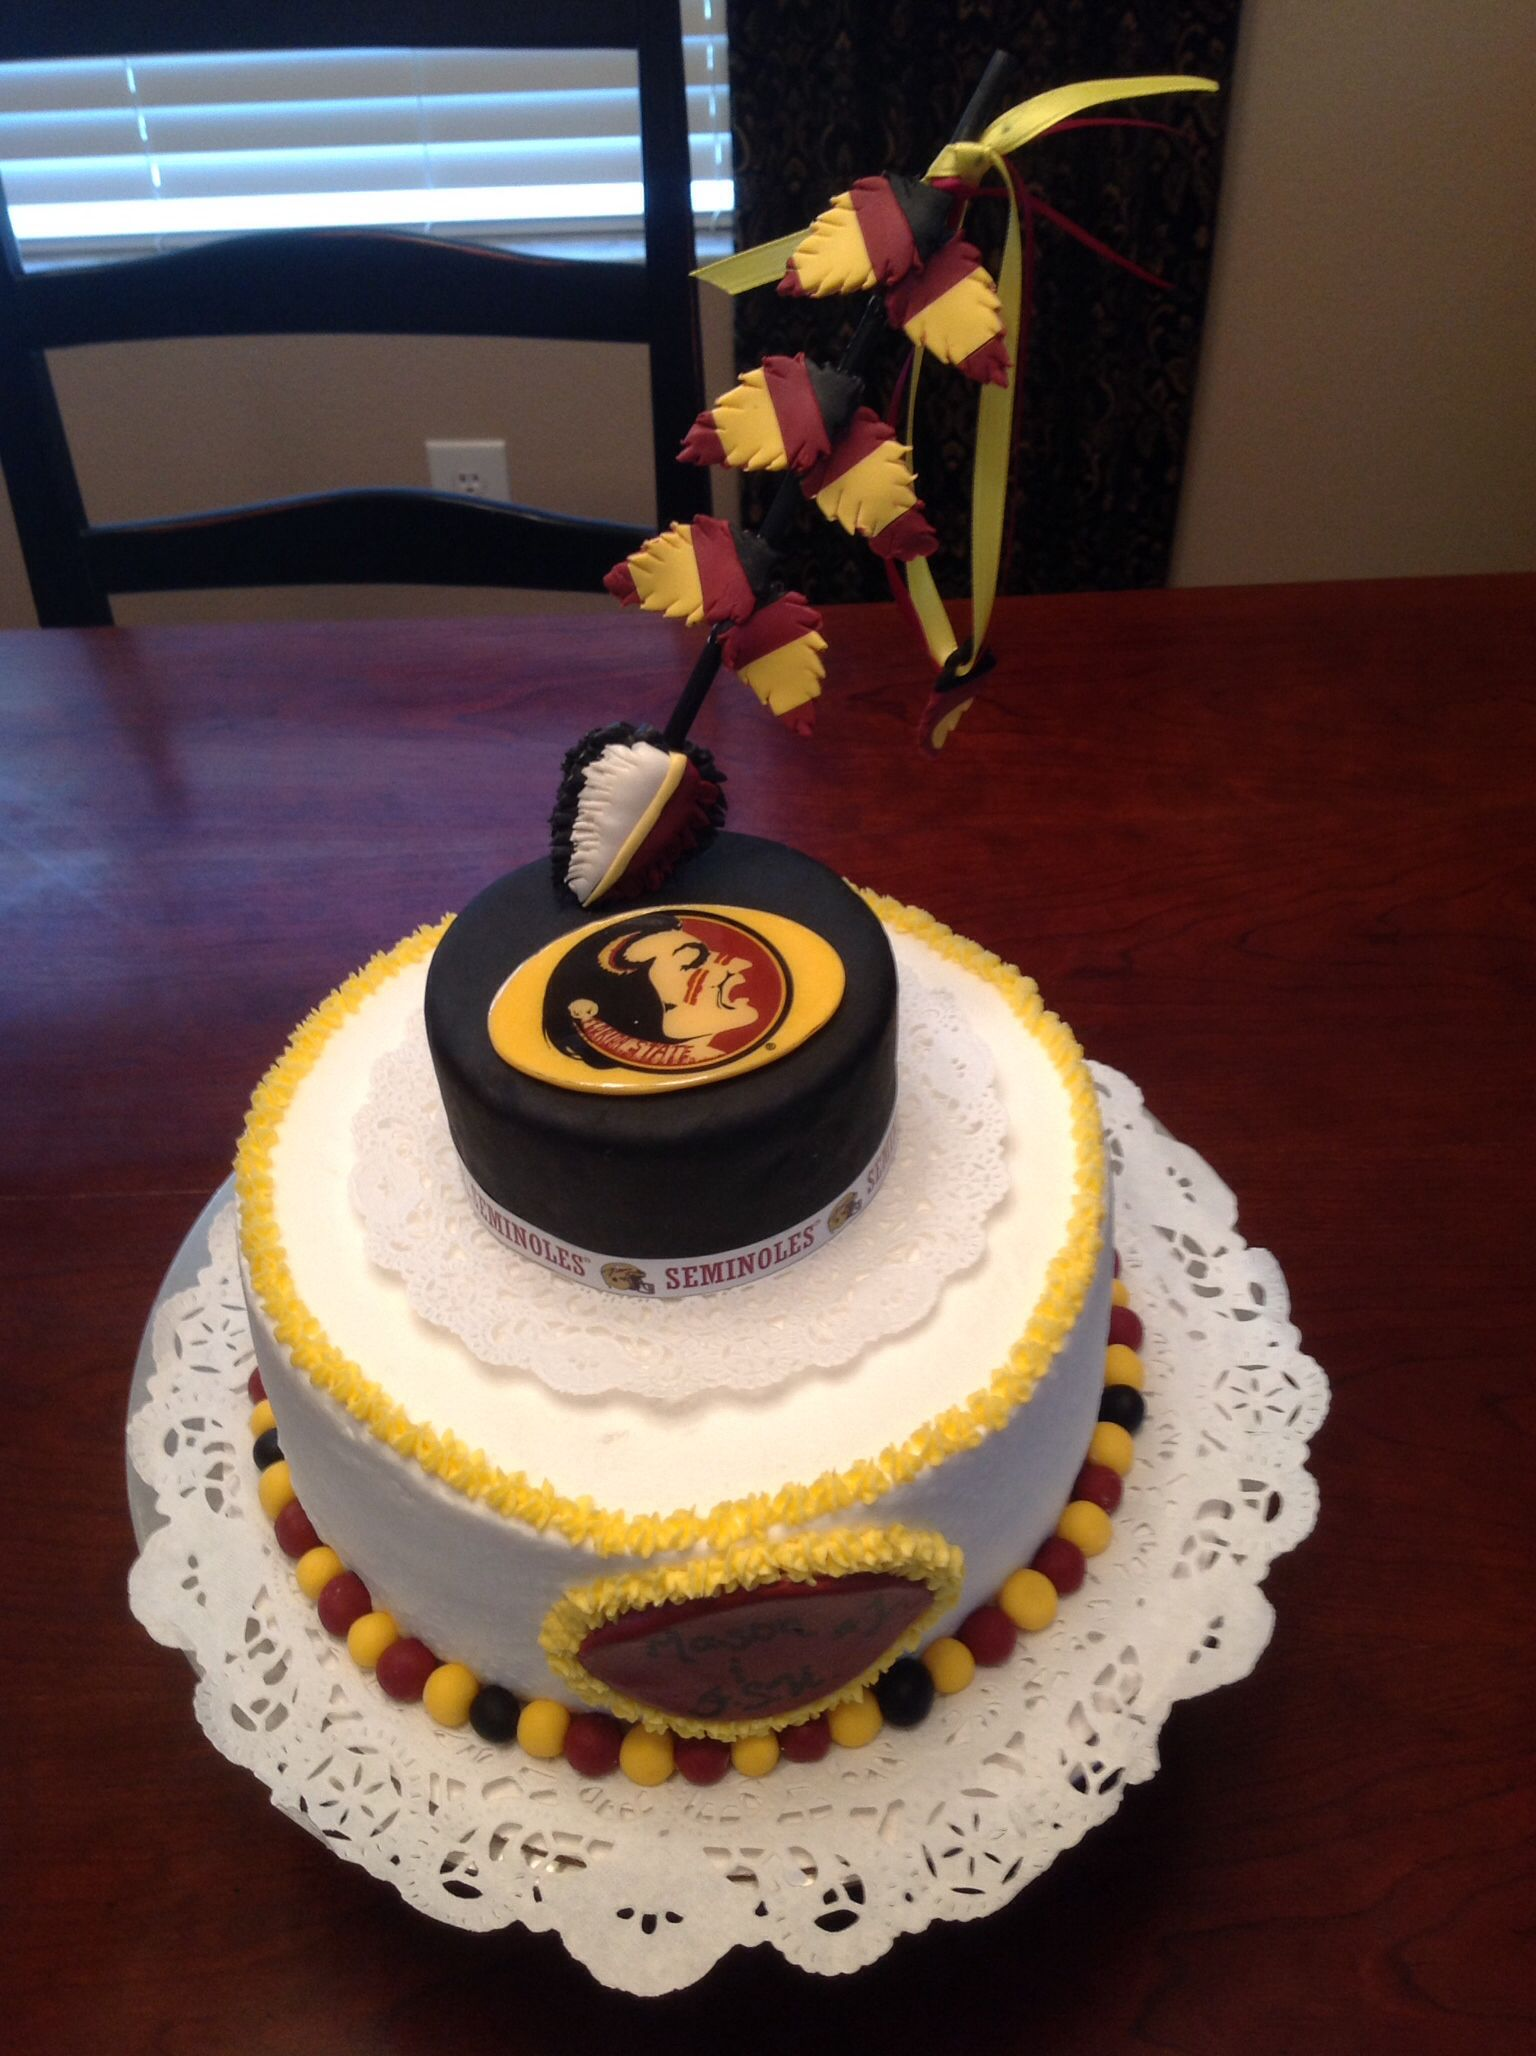 Fsu Themed Cake Birthday Cake Game Day Cake Buttercream With